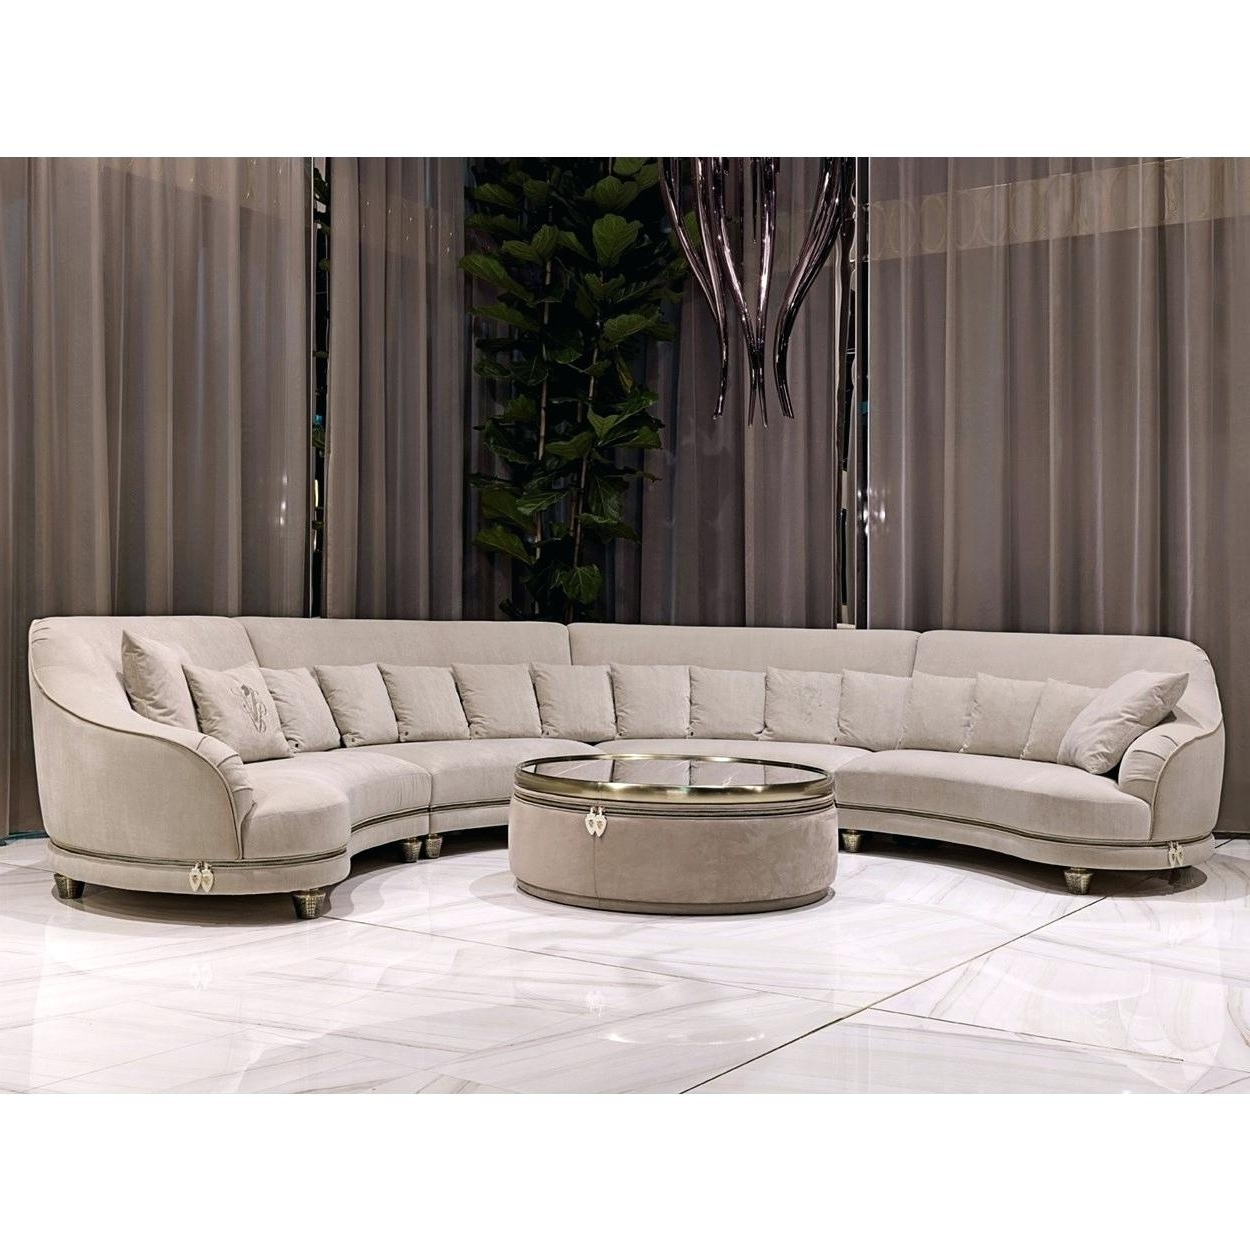 Preferred Curved Recliner Sofas Inside Curve Sofa Curved Sectional Bed Recliner Couches – Lilwayne (View 17 of 20)